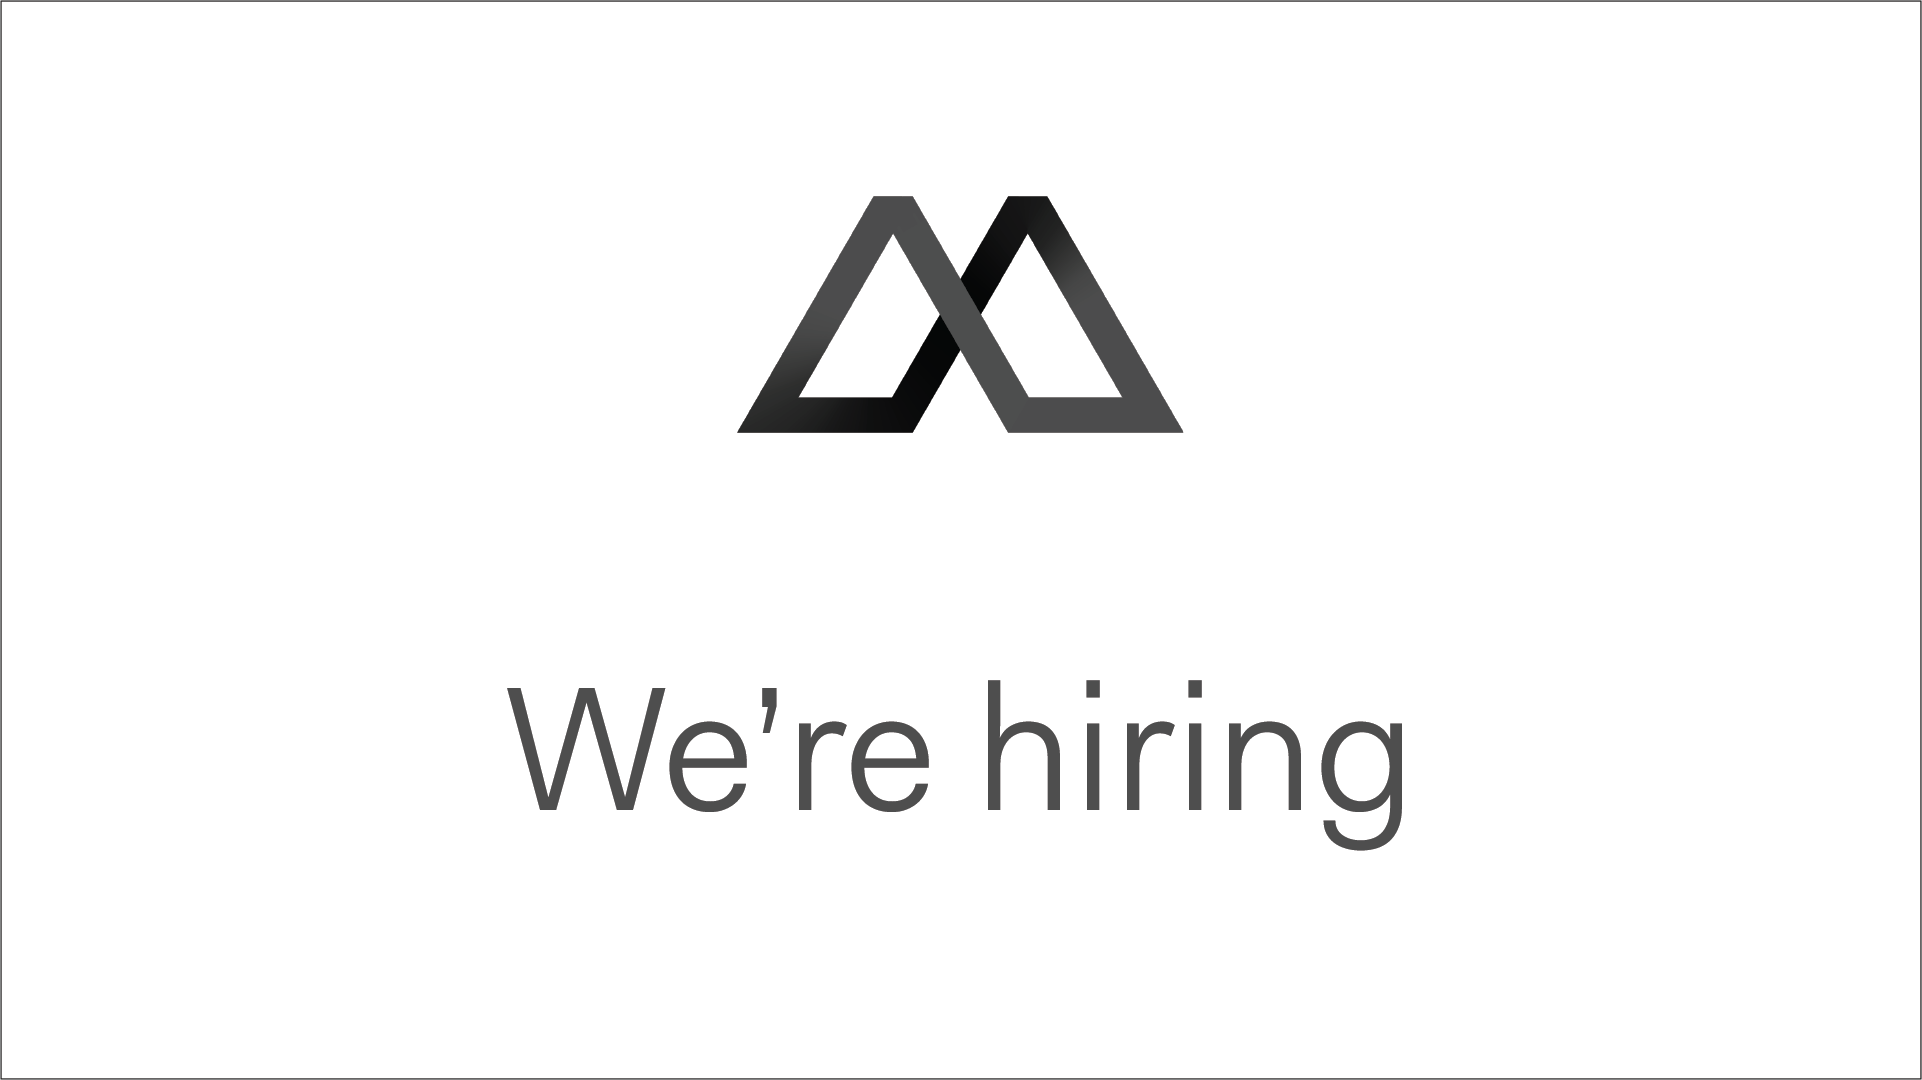 Manto logo advertising that the company is hiring